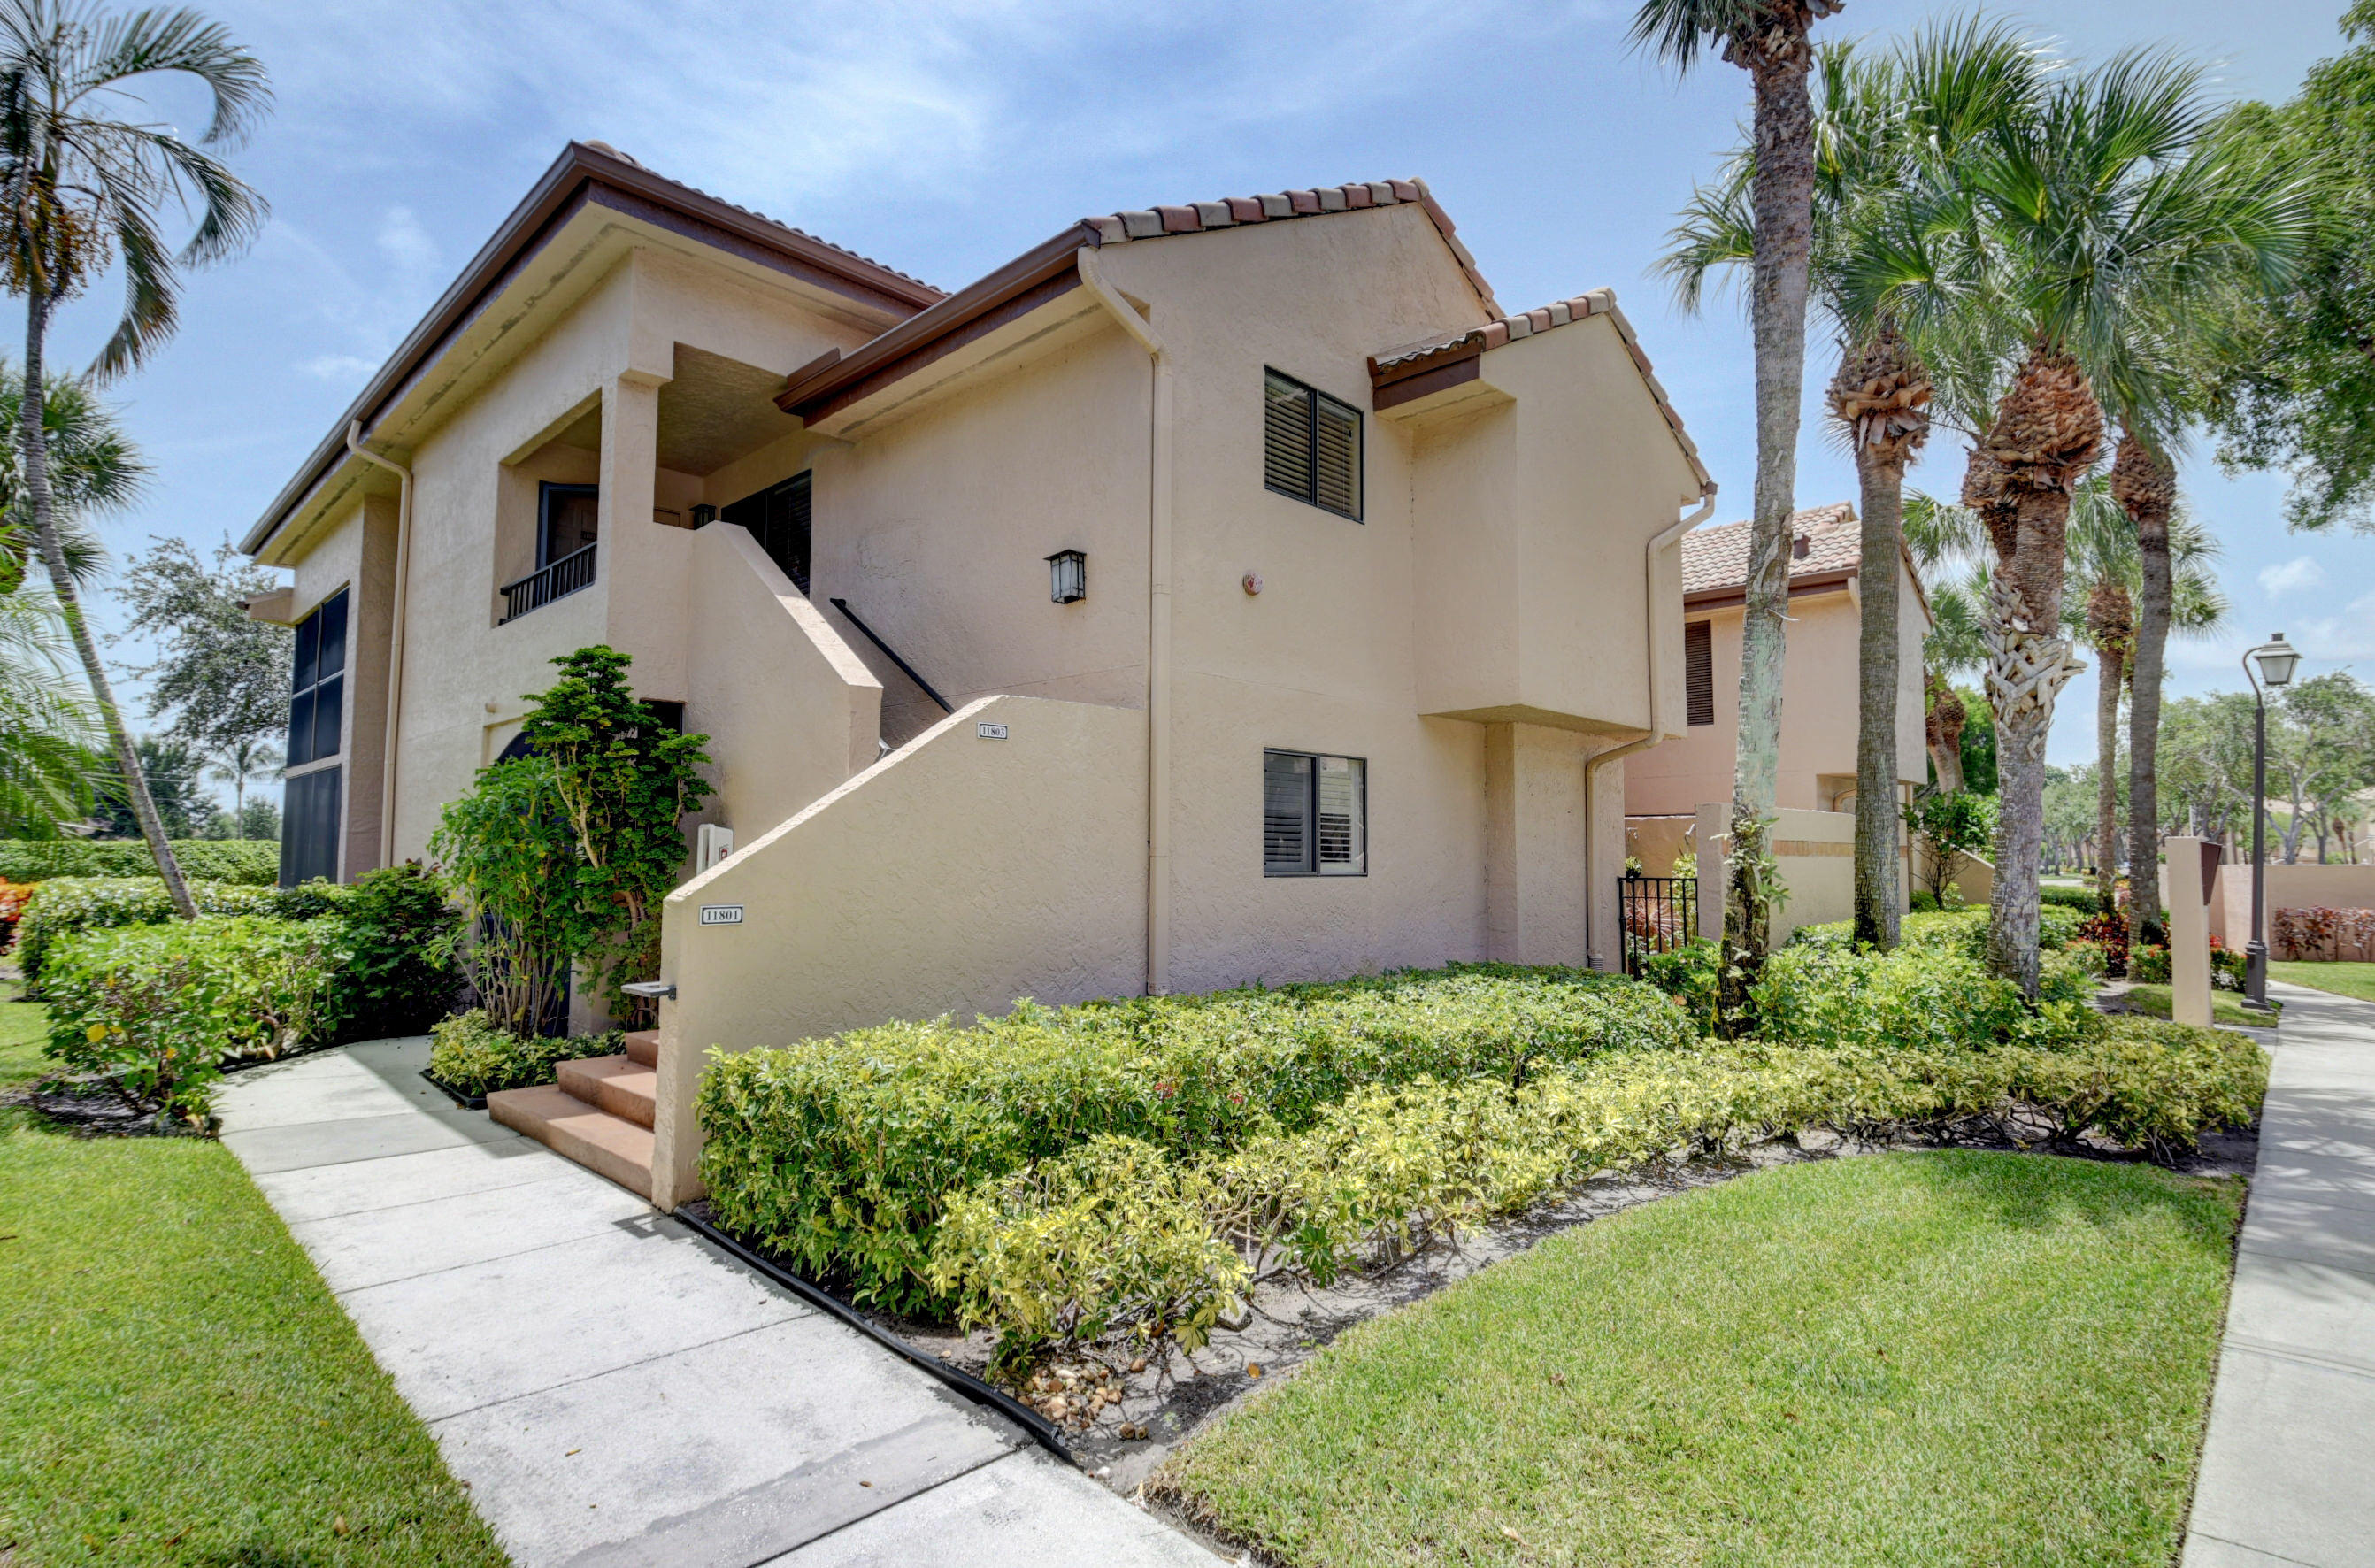 Home for sale in Gleneagles Cc Delray Beach Florida